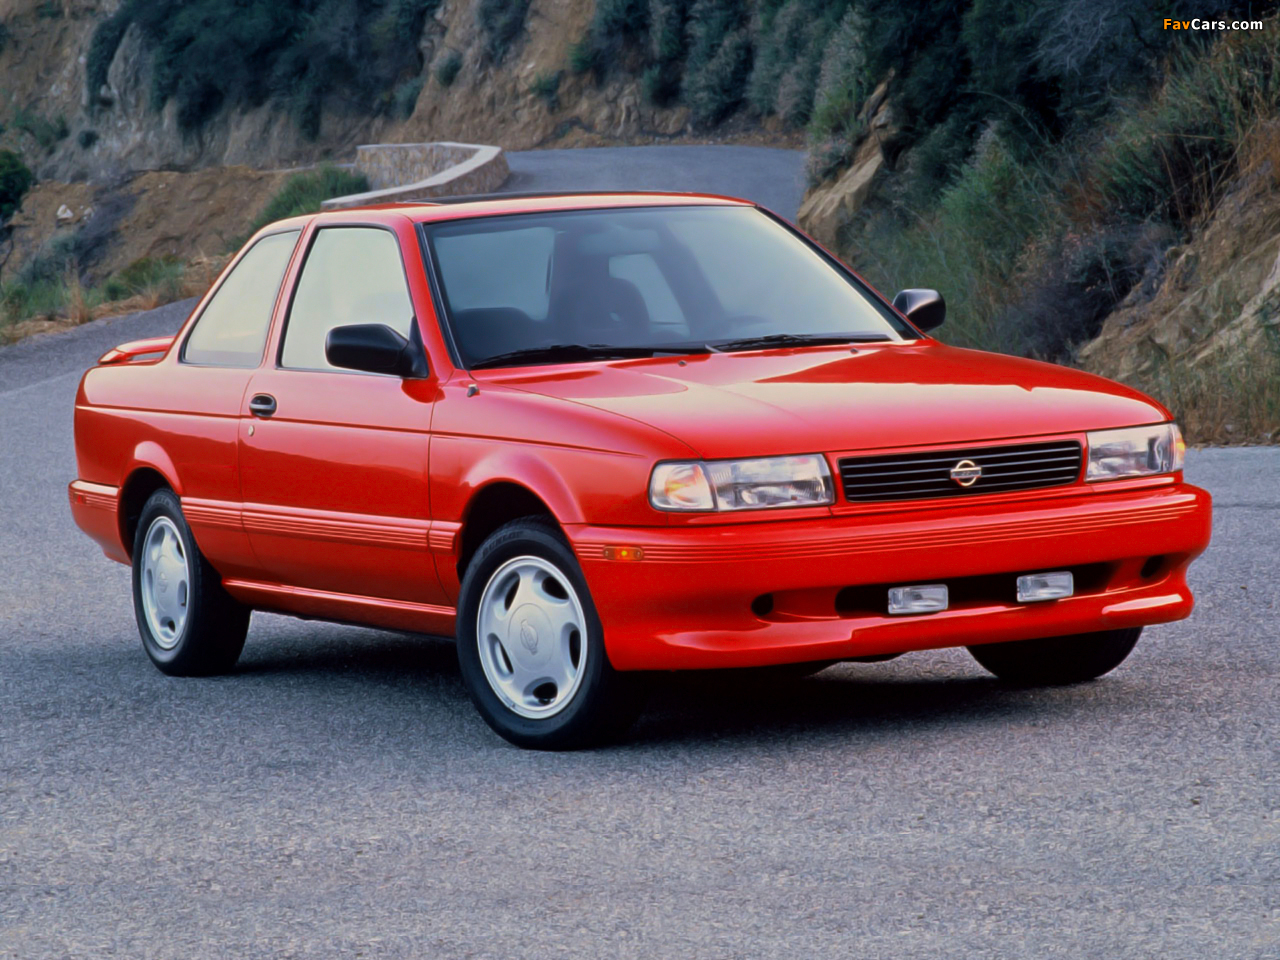 Nissan sentra se-r coupe (b13) 1991–94 photos (1280 x 960)